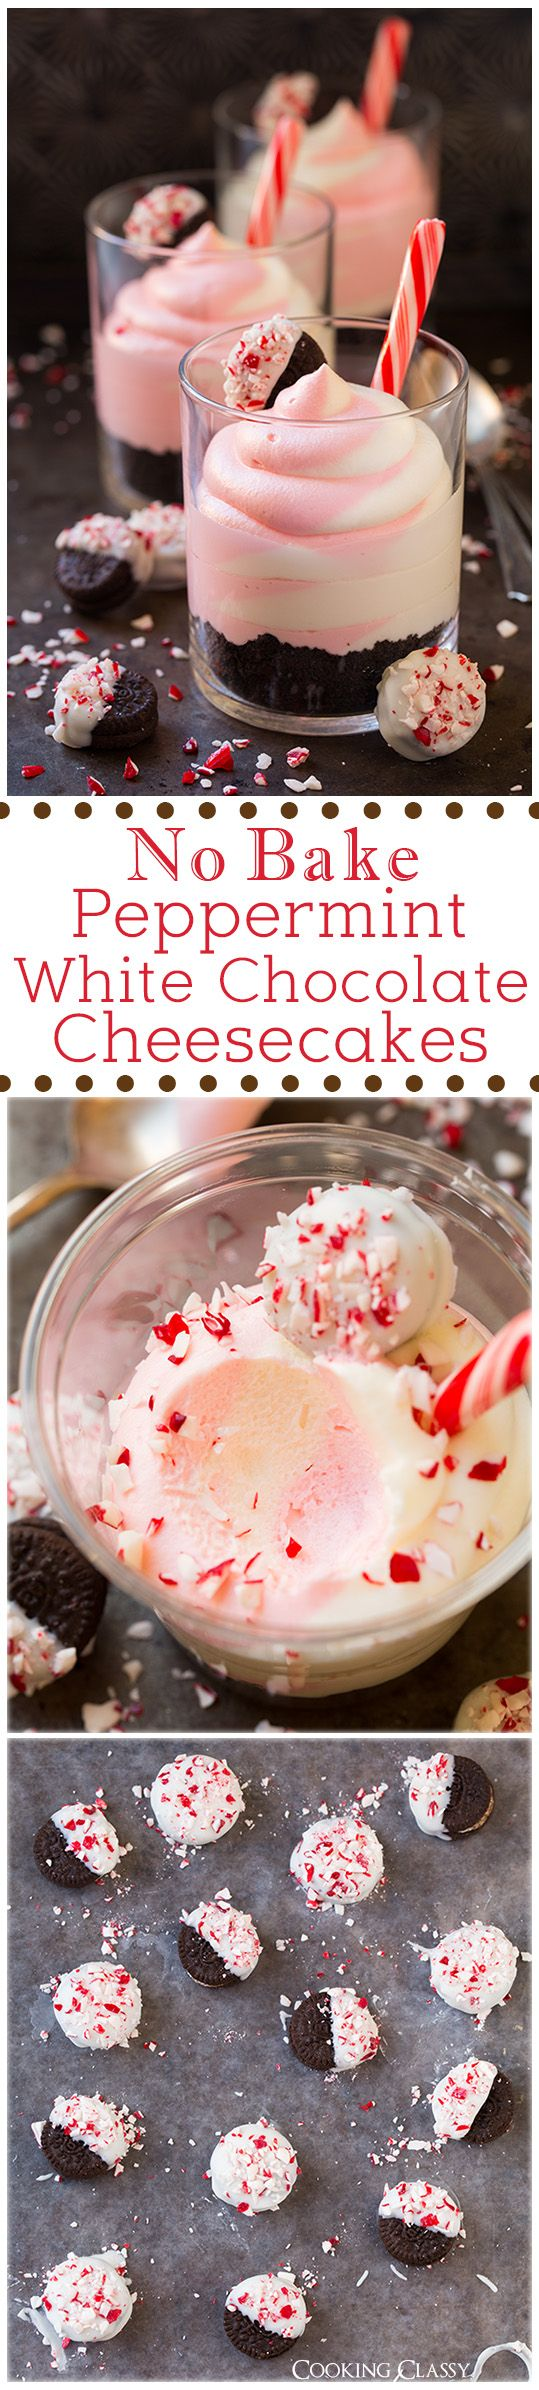 chrome hearts eyeglasses gittin any ii vidal sassoon dies yahoo No Bake Peppermint White Chocolate Cheesecakes  with White Chocolate Peppermint Dipped Mini Oreos    these are AMAZING   Easy to make and they have the perfect texture and flavor